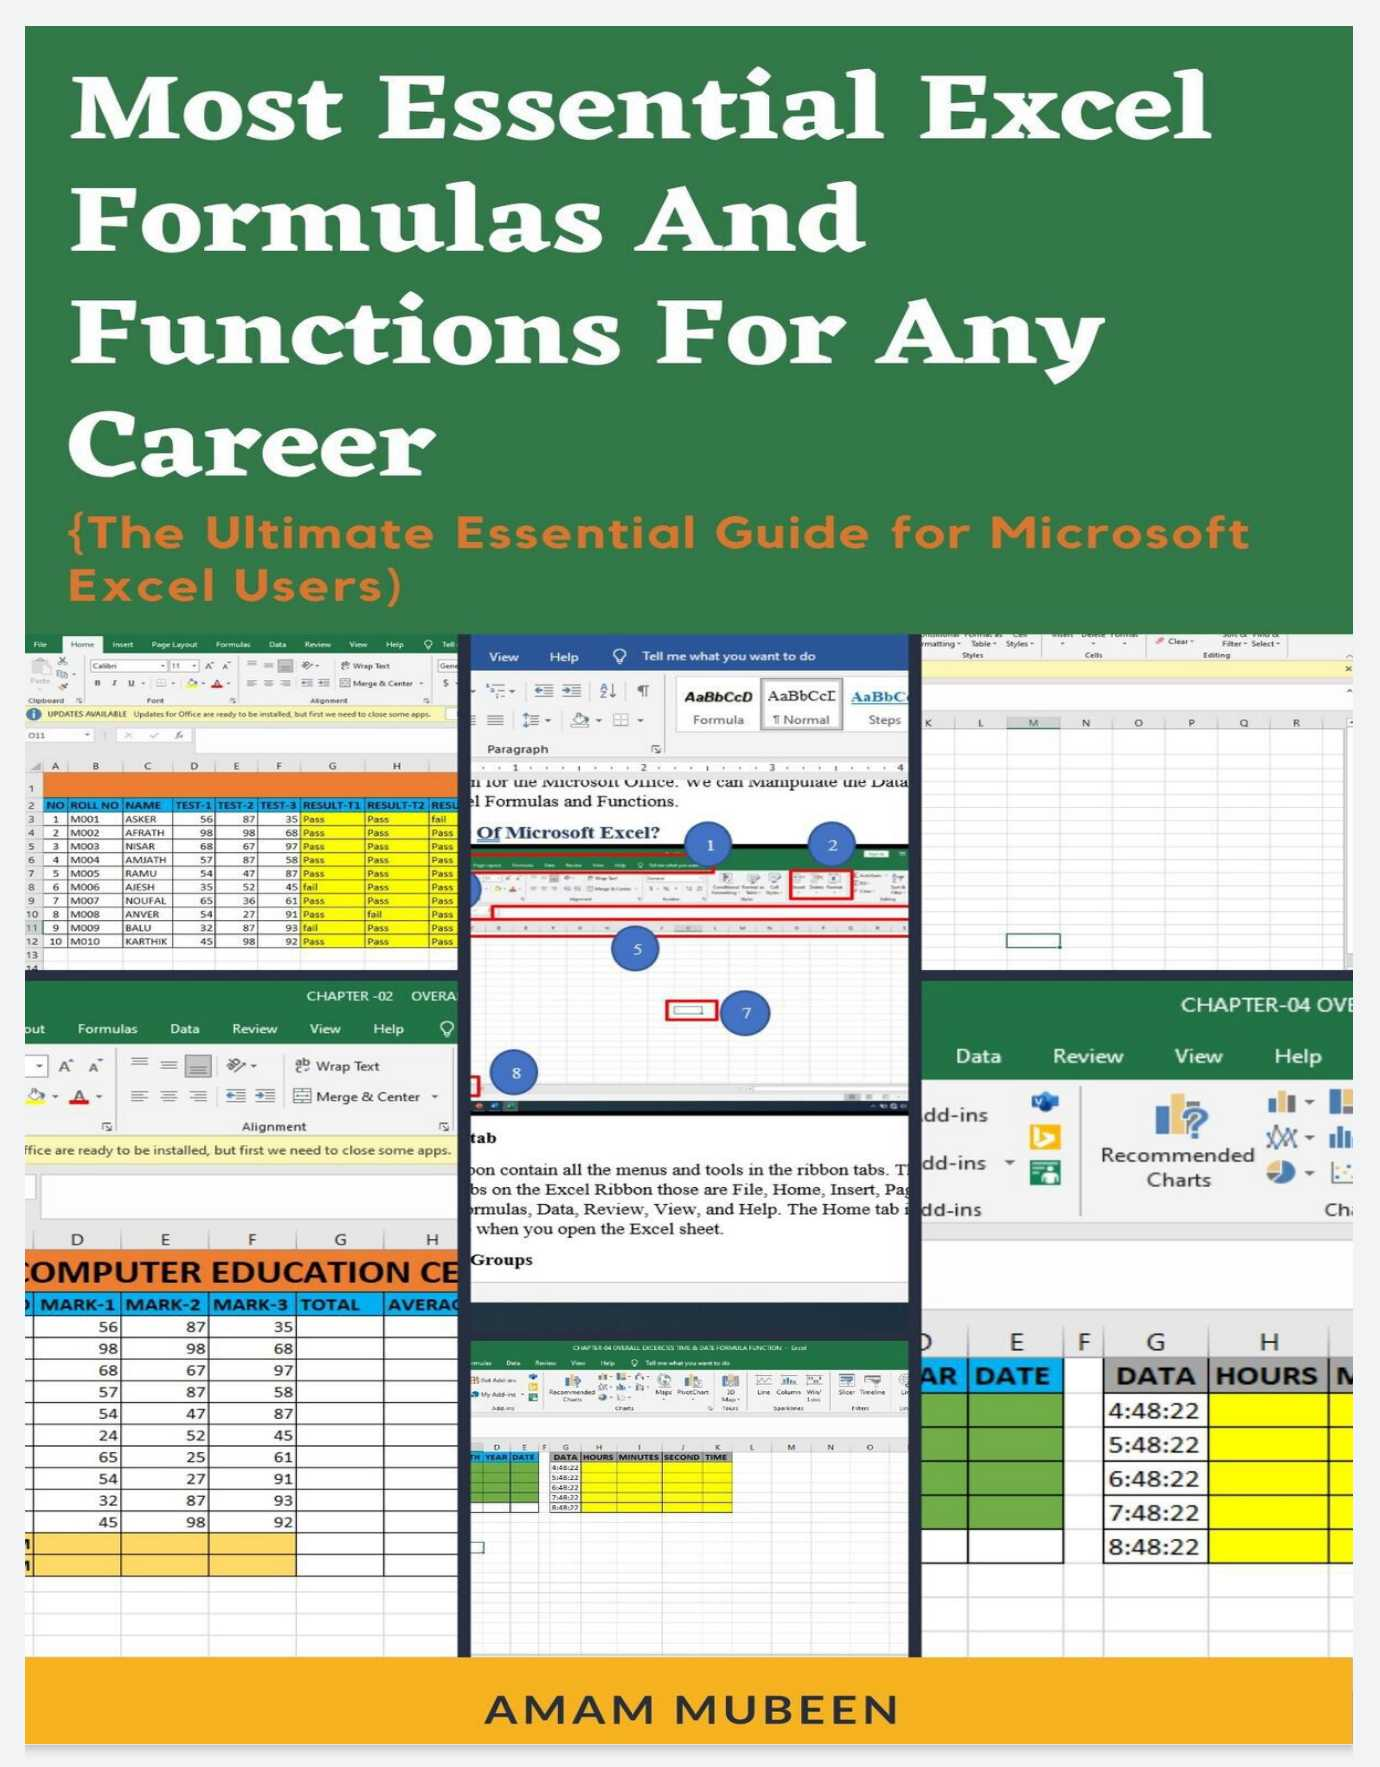 Most Essential Excel Formulas and Functions for Any Career